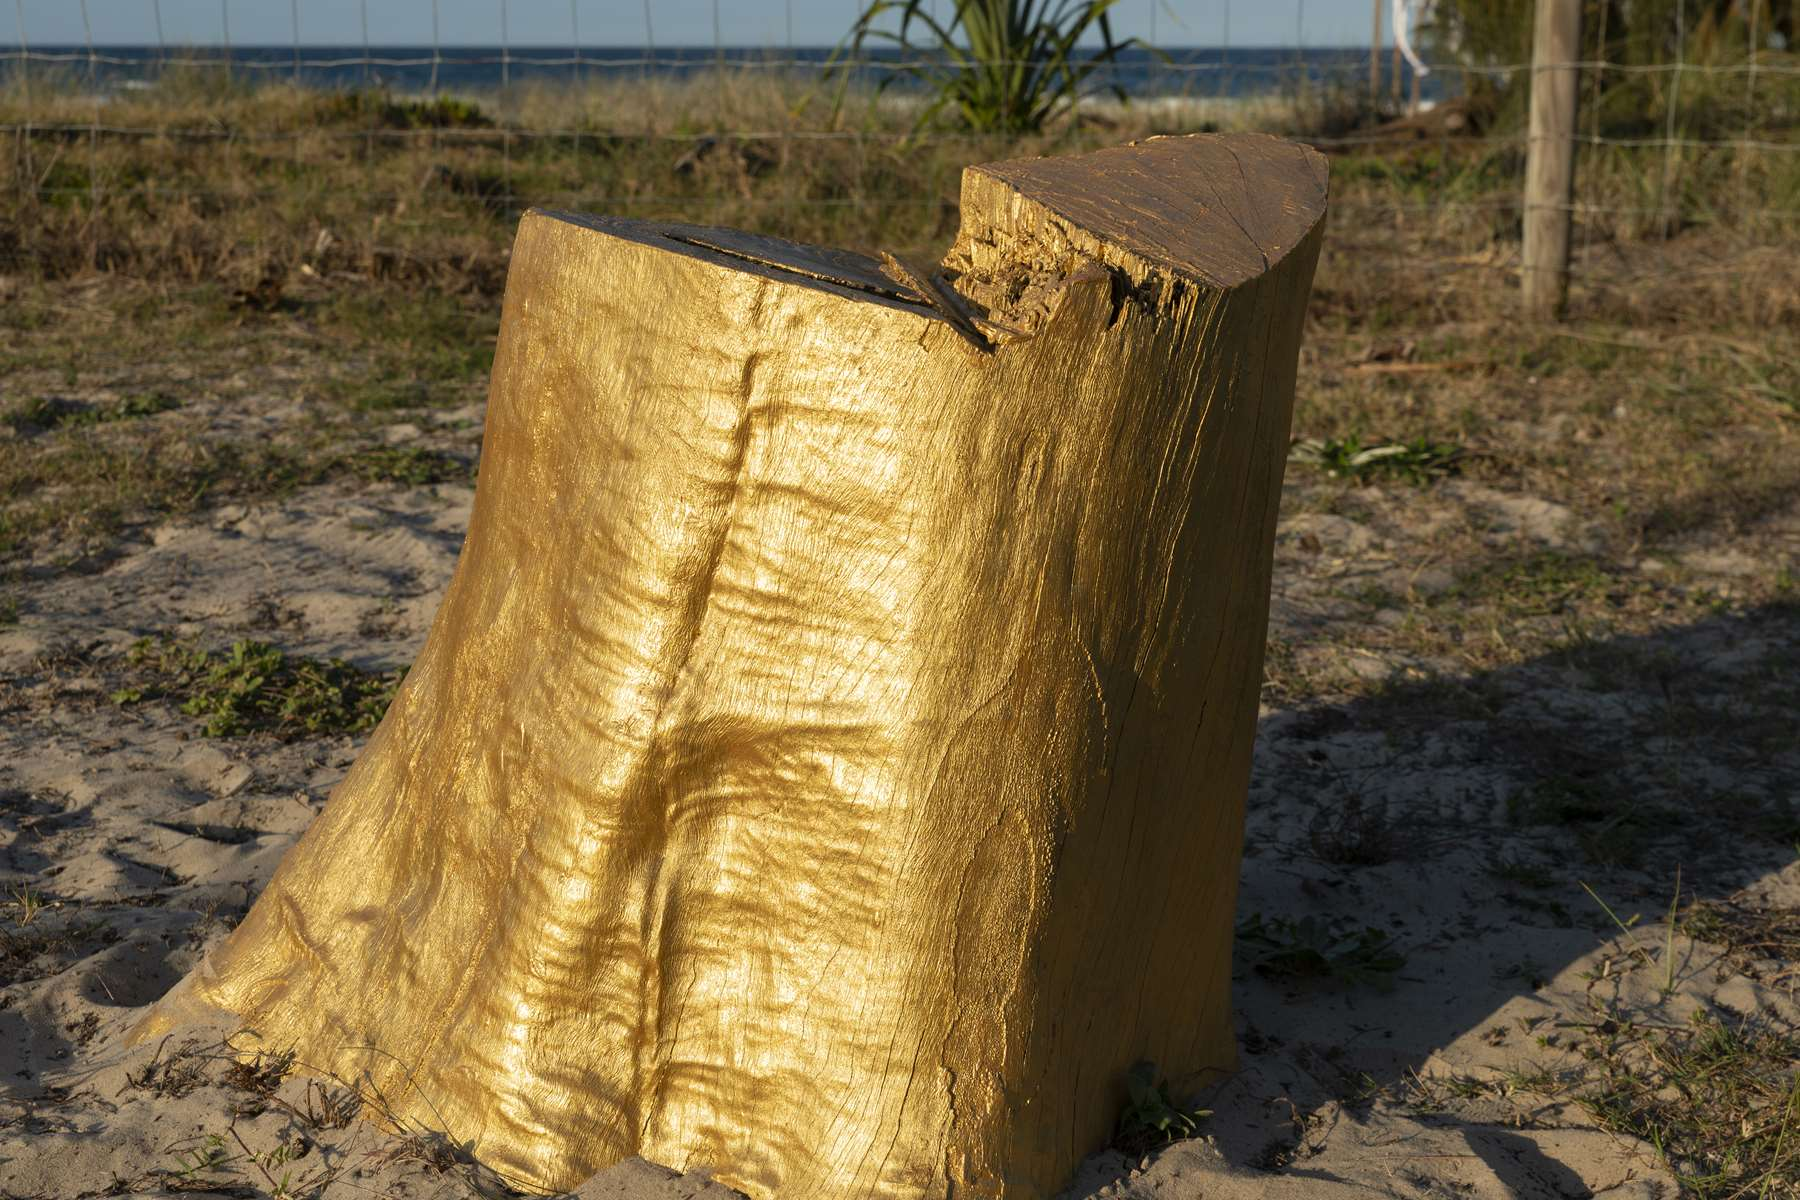 NGARA TREE, Swell Sculpture Festival, Gold Coast, Australia, 2018. Installation by Karl Chilcott.